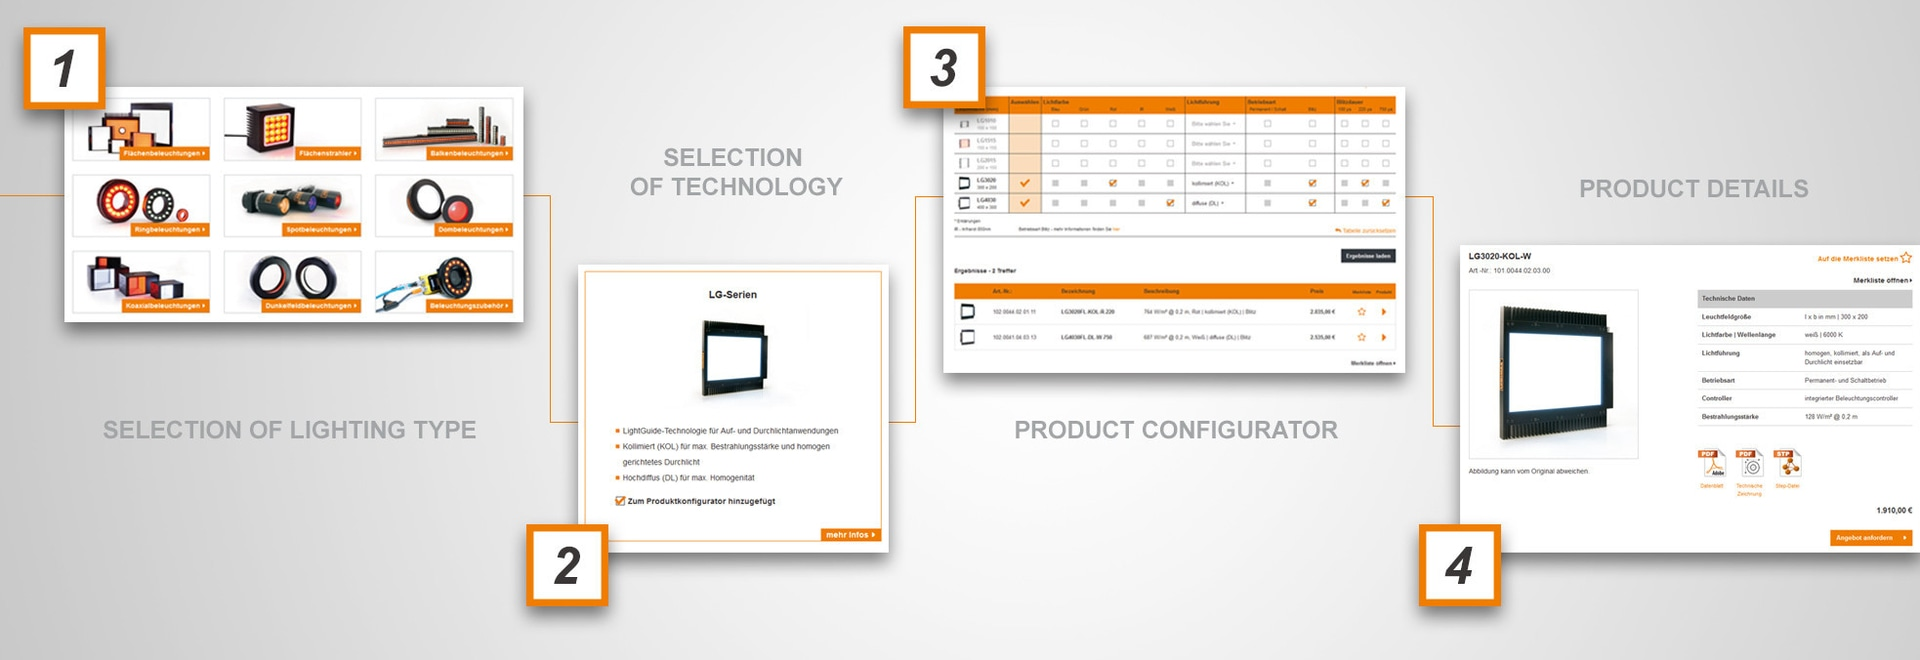 The new LUMIMAX® online product configurator